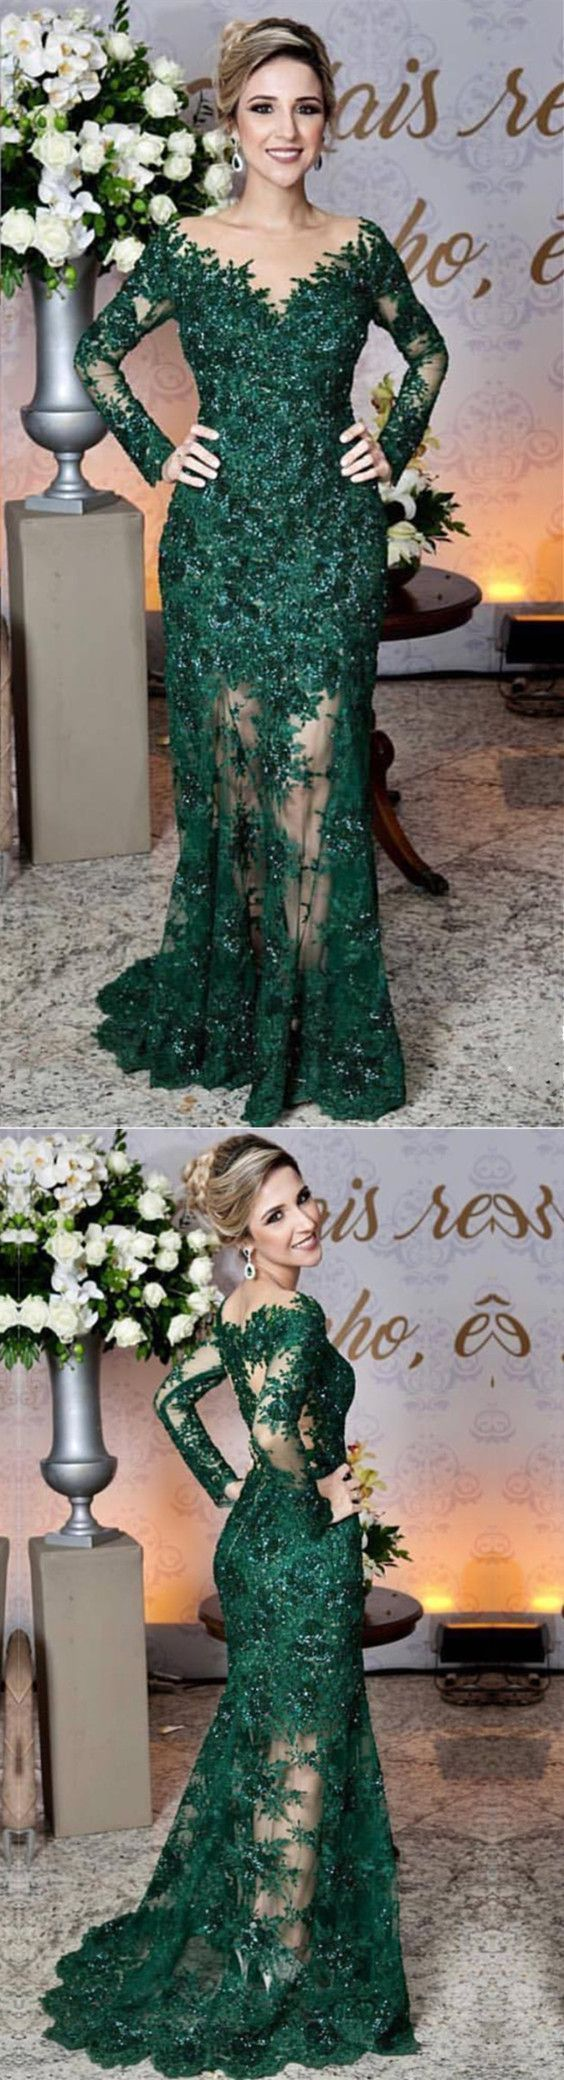 Emerald green lace long sleeves mermaid prom dresses see through